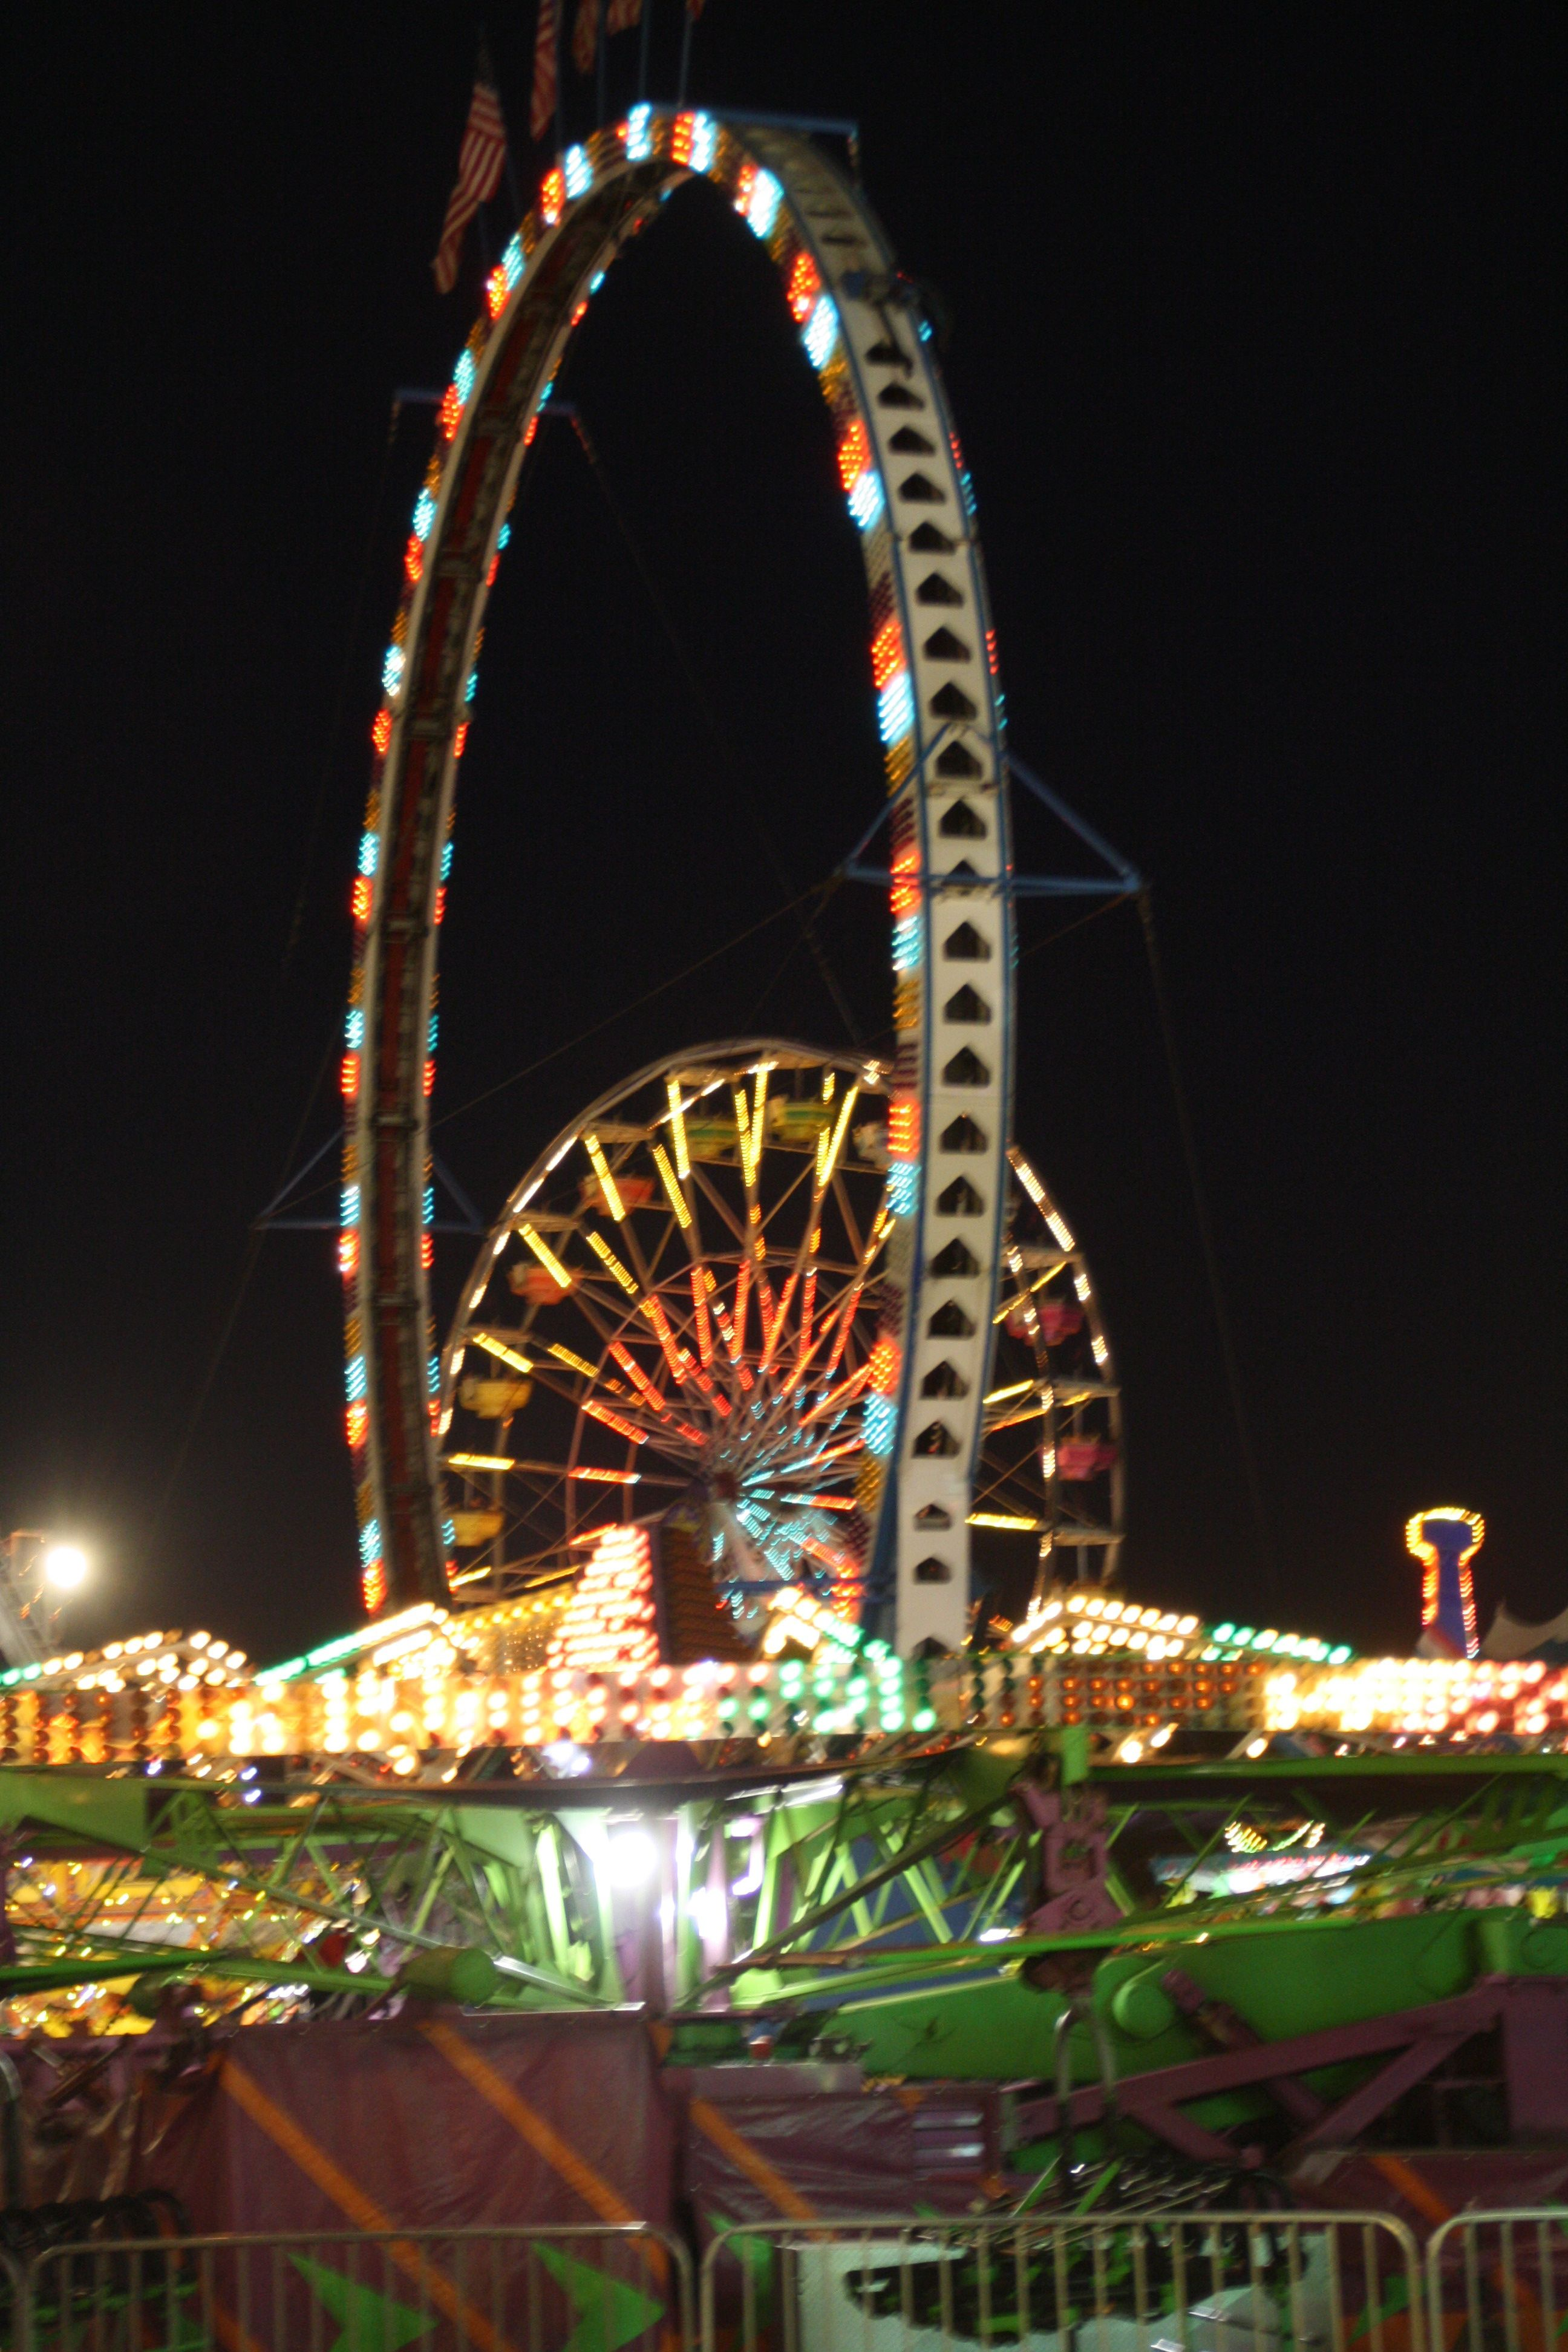 carnival midway. annual ventura county fair. end of july – august